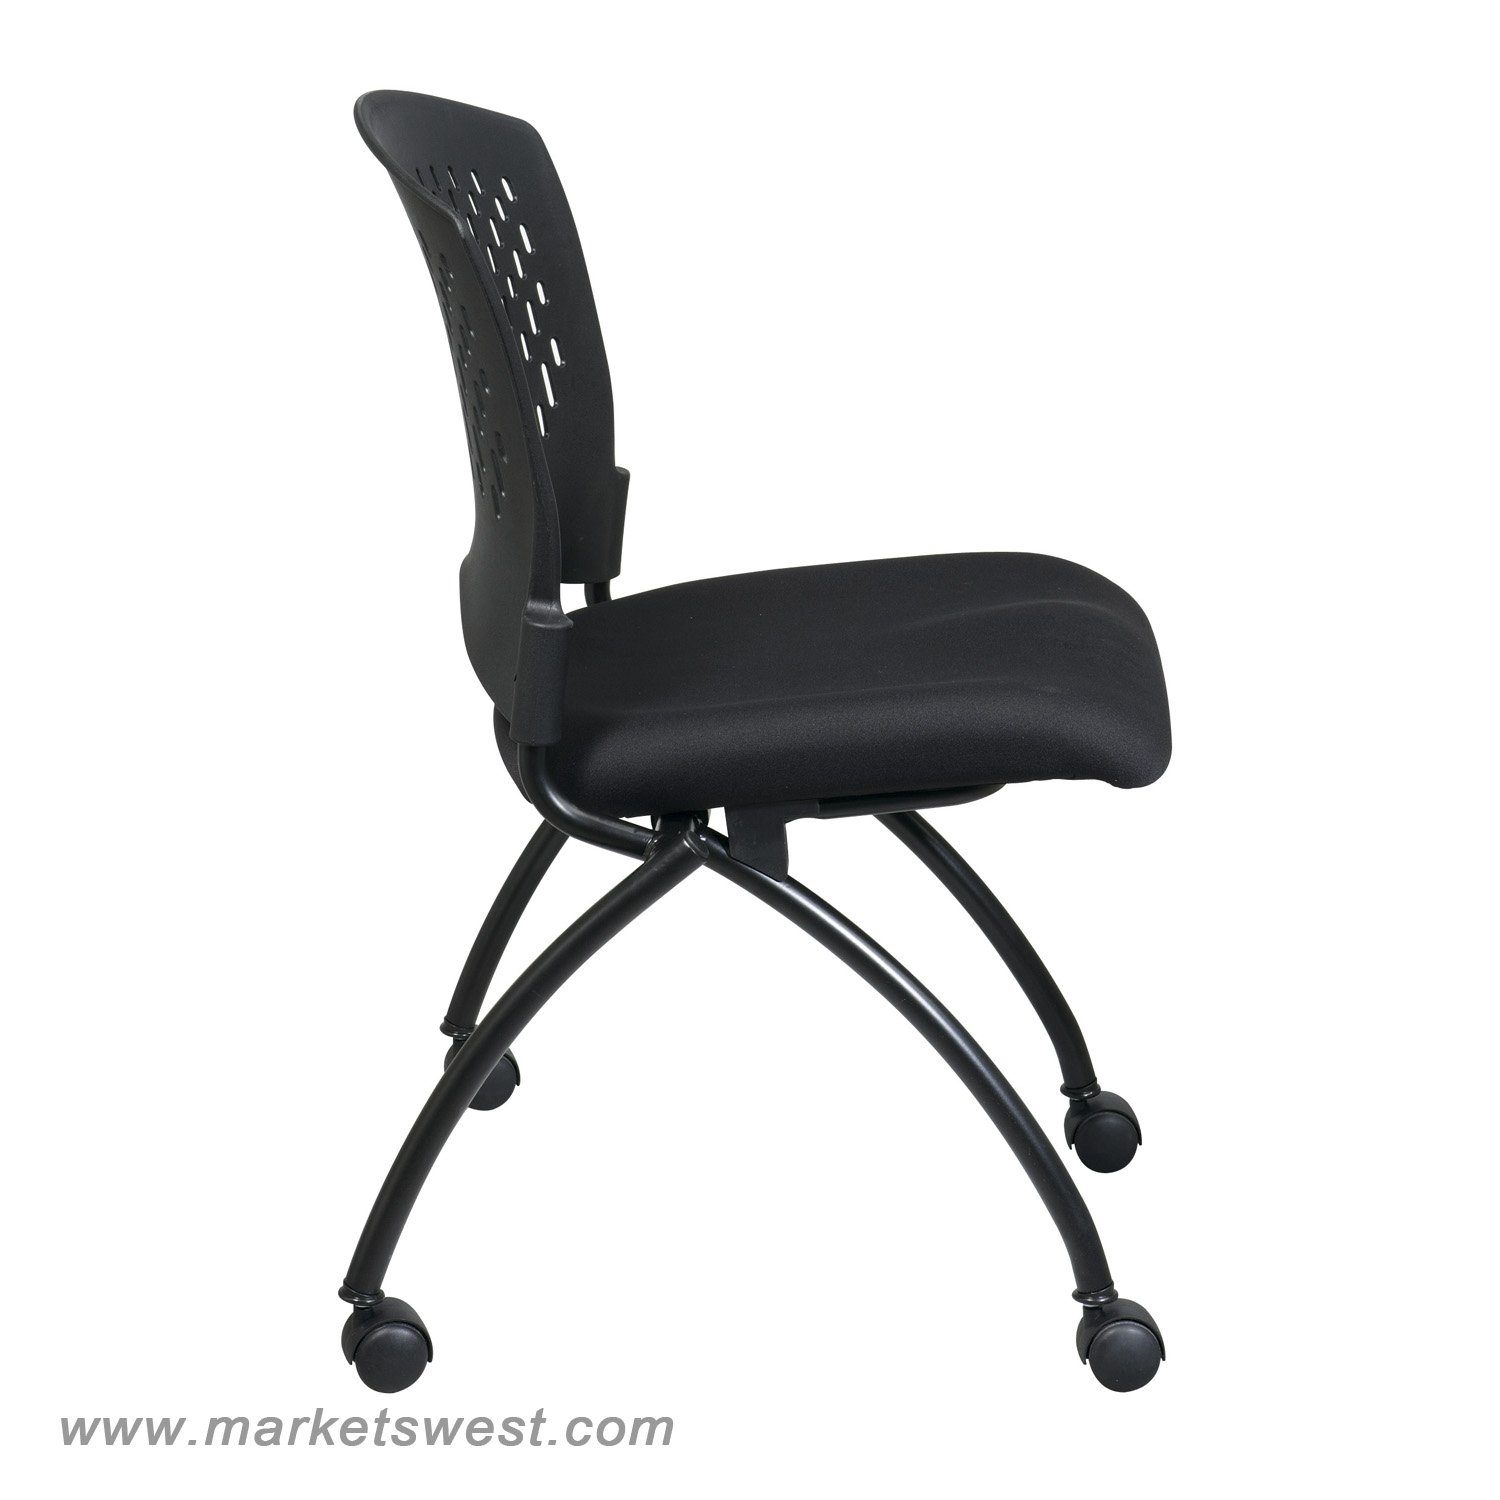 Deluxe Folding Chair with Ventilated Back No Arms